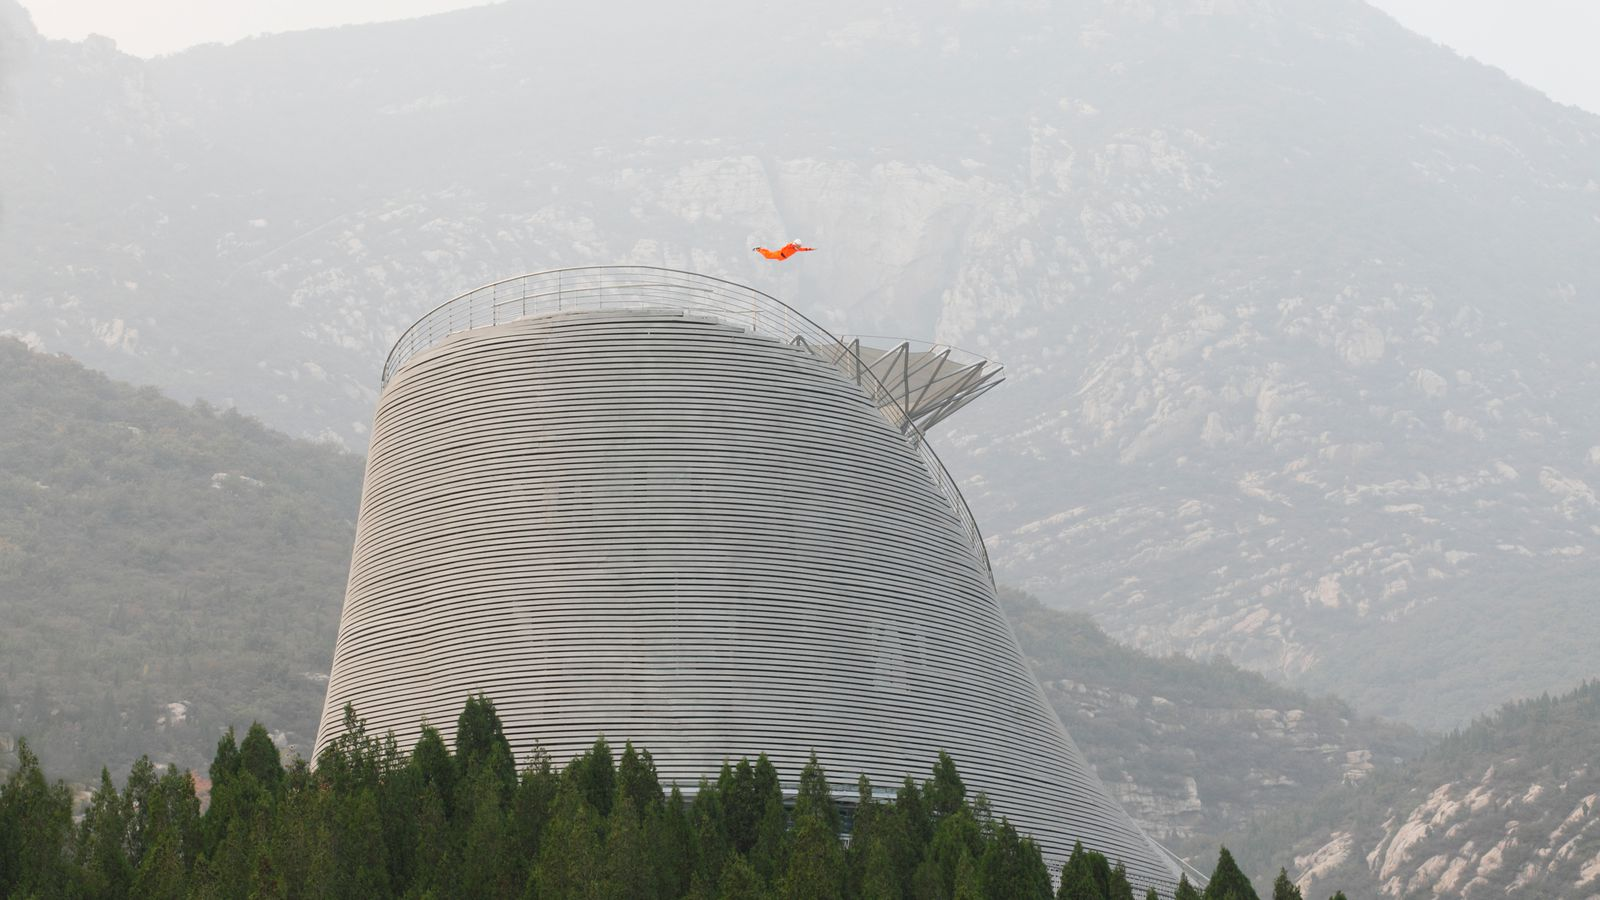 Architect Builds Giant Wind Turbine Temple For Shaolin Monks Curbed